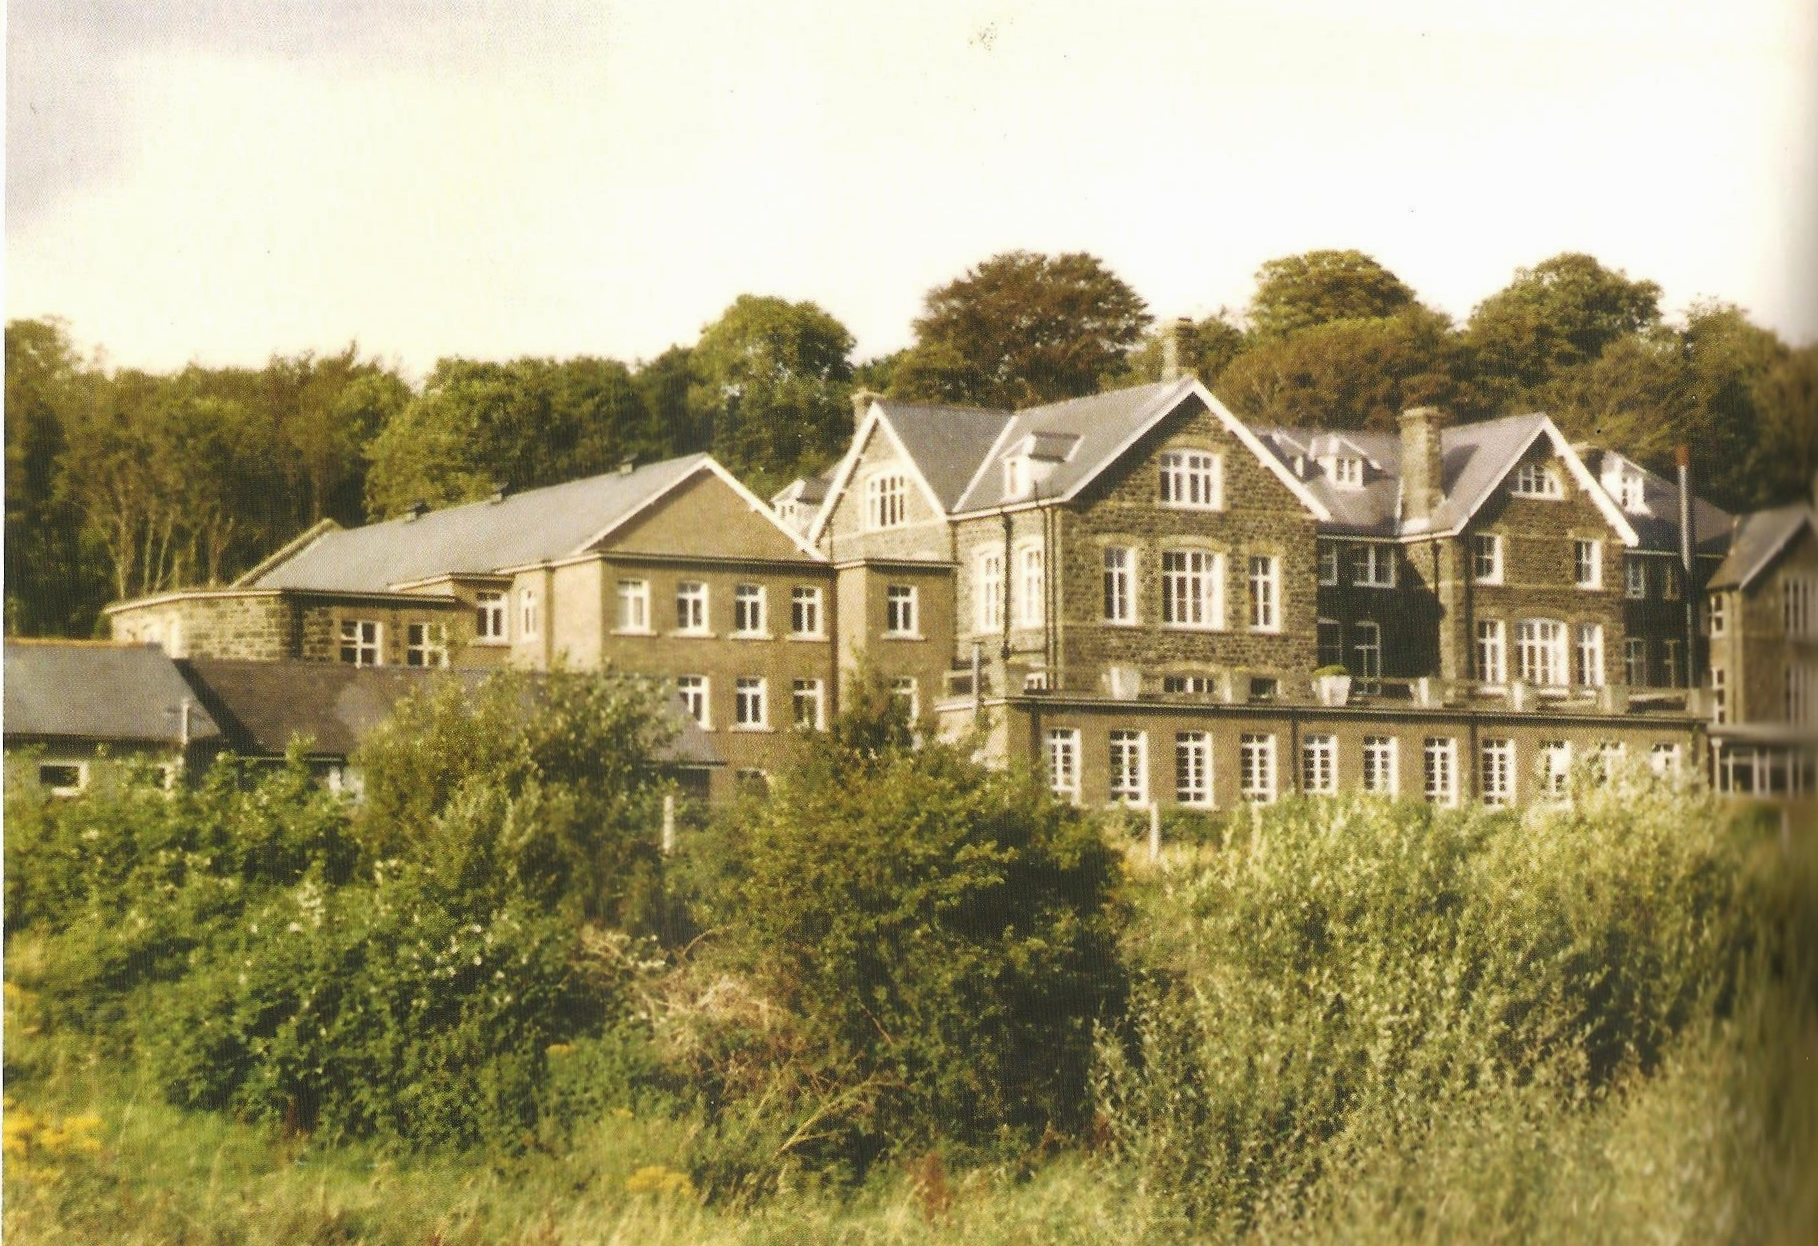 Rear view of Dr Williams' School